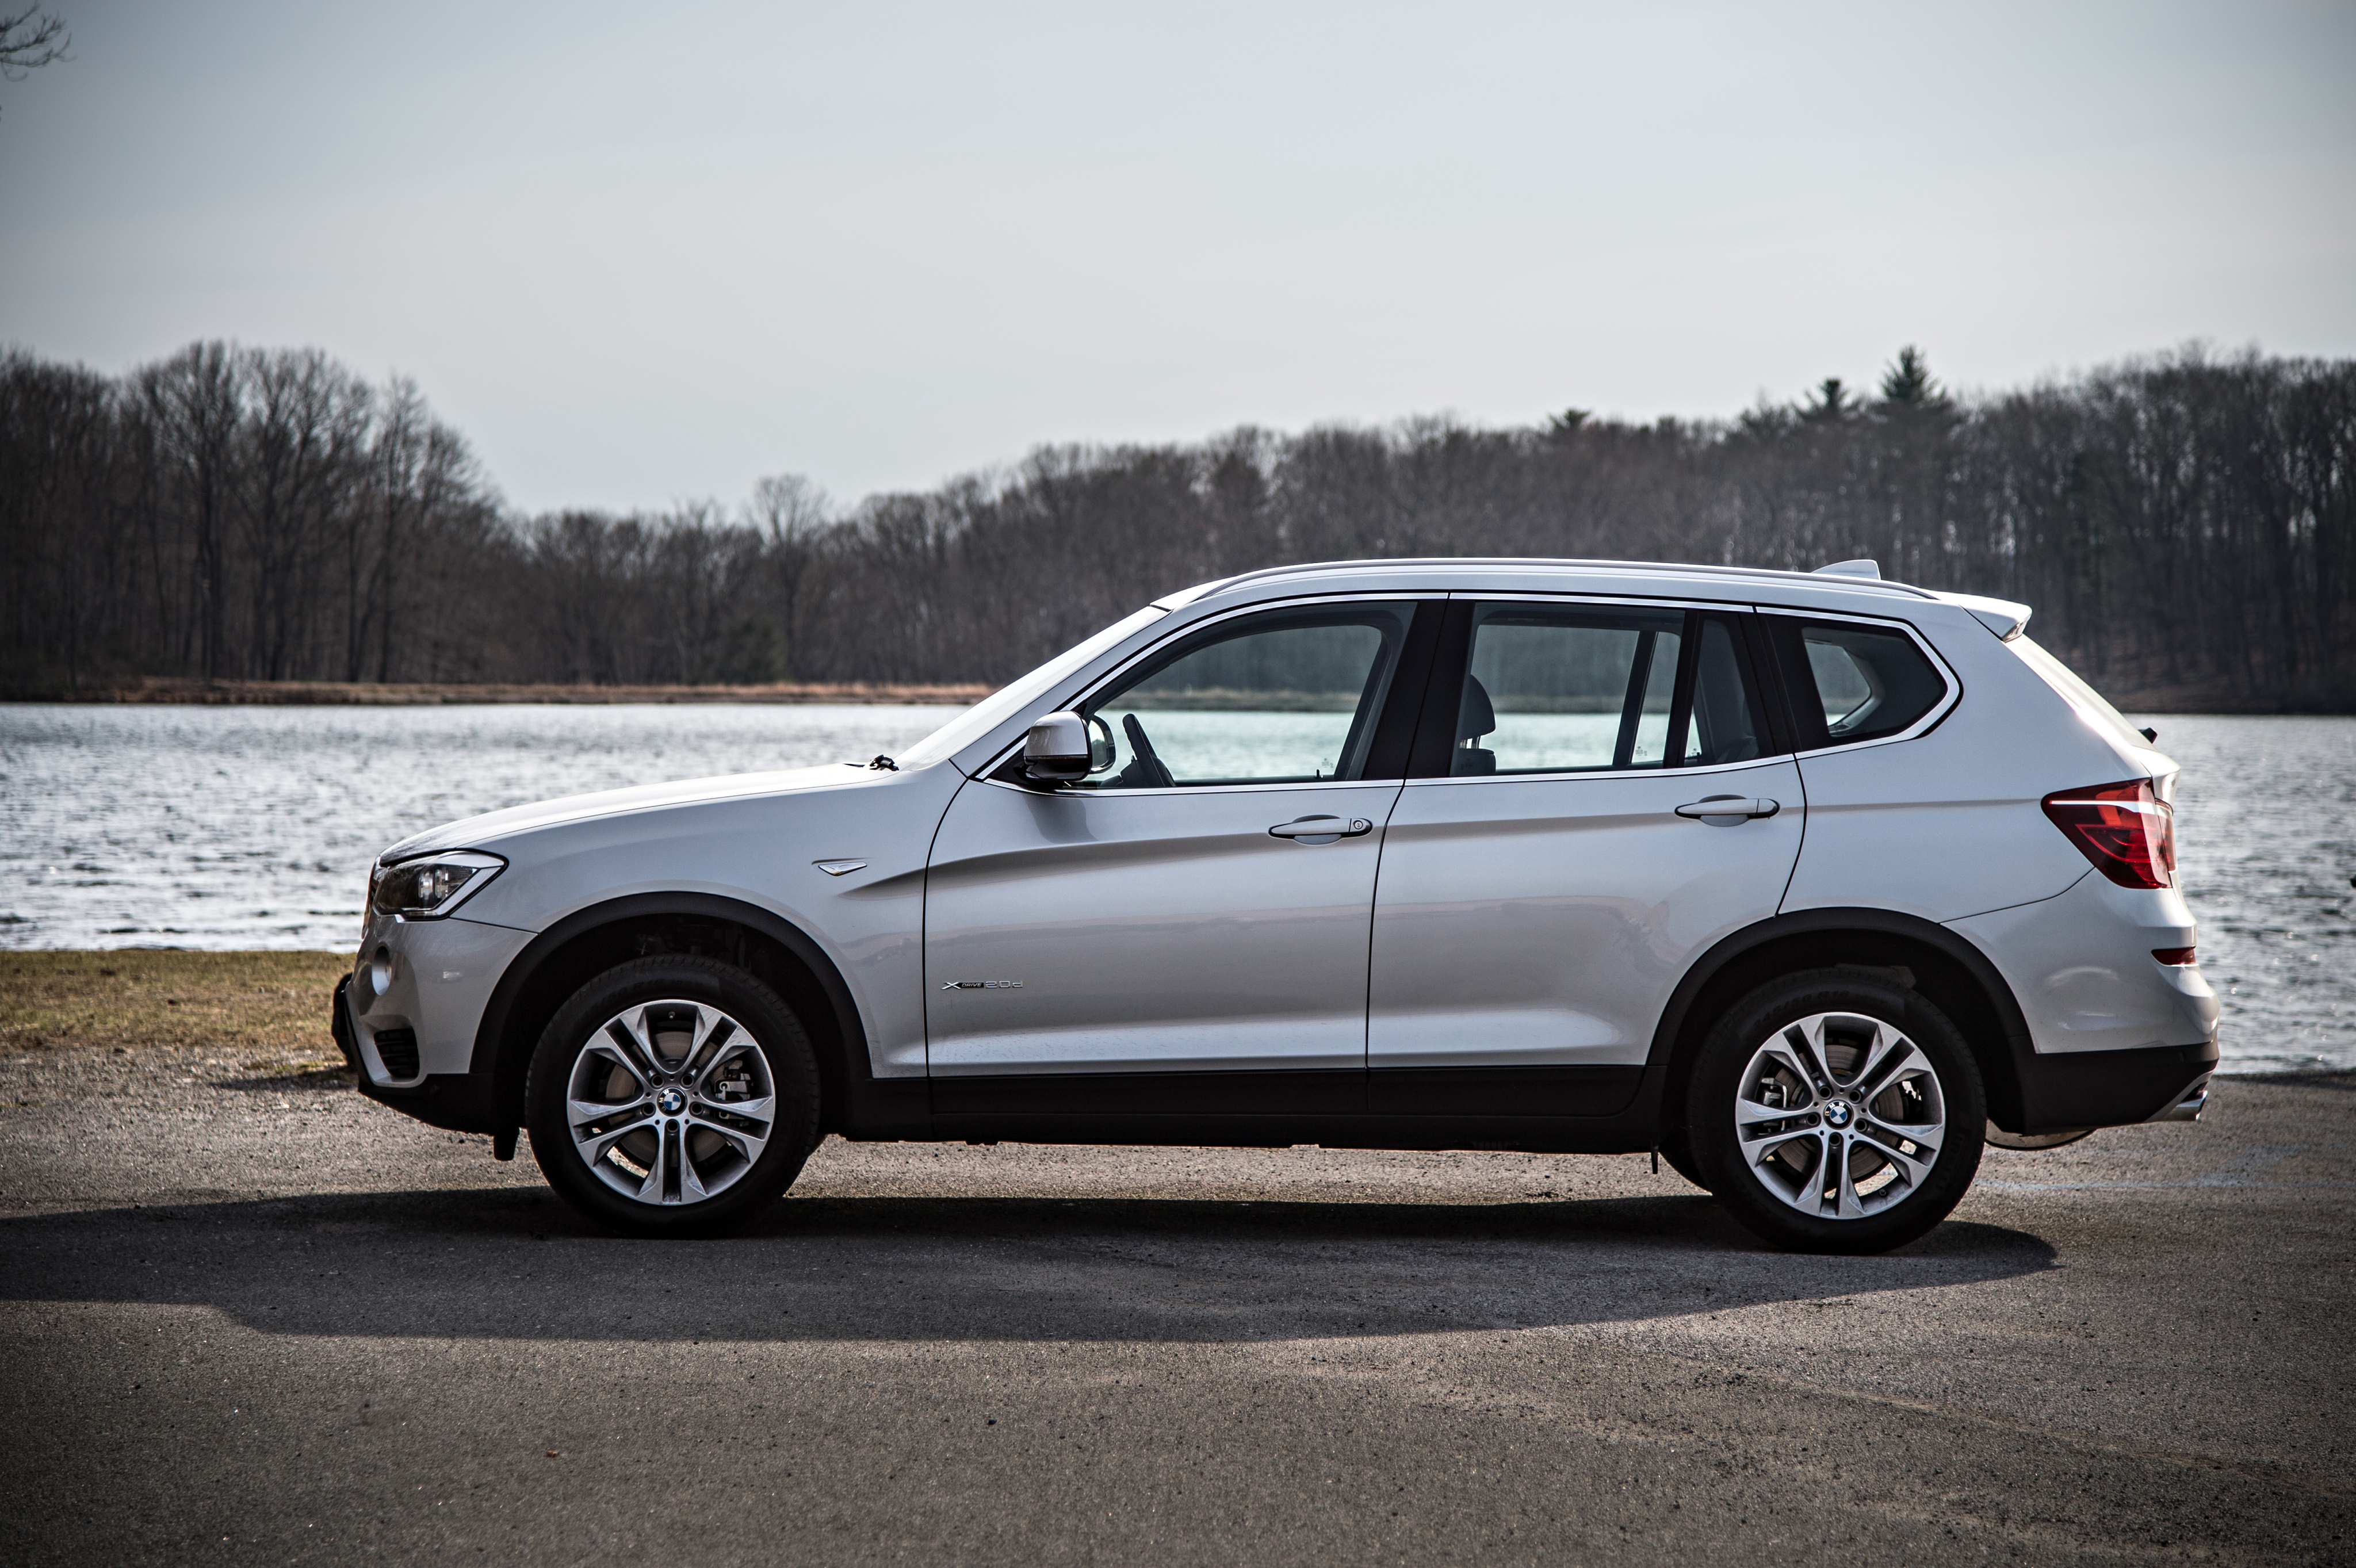 BMW X3 xDrive20d 2014 photo - 1